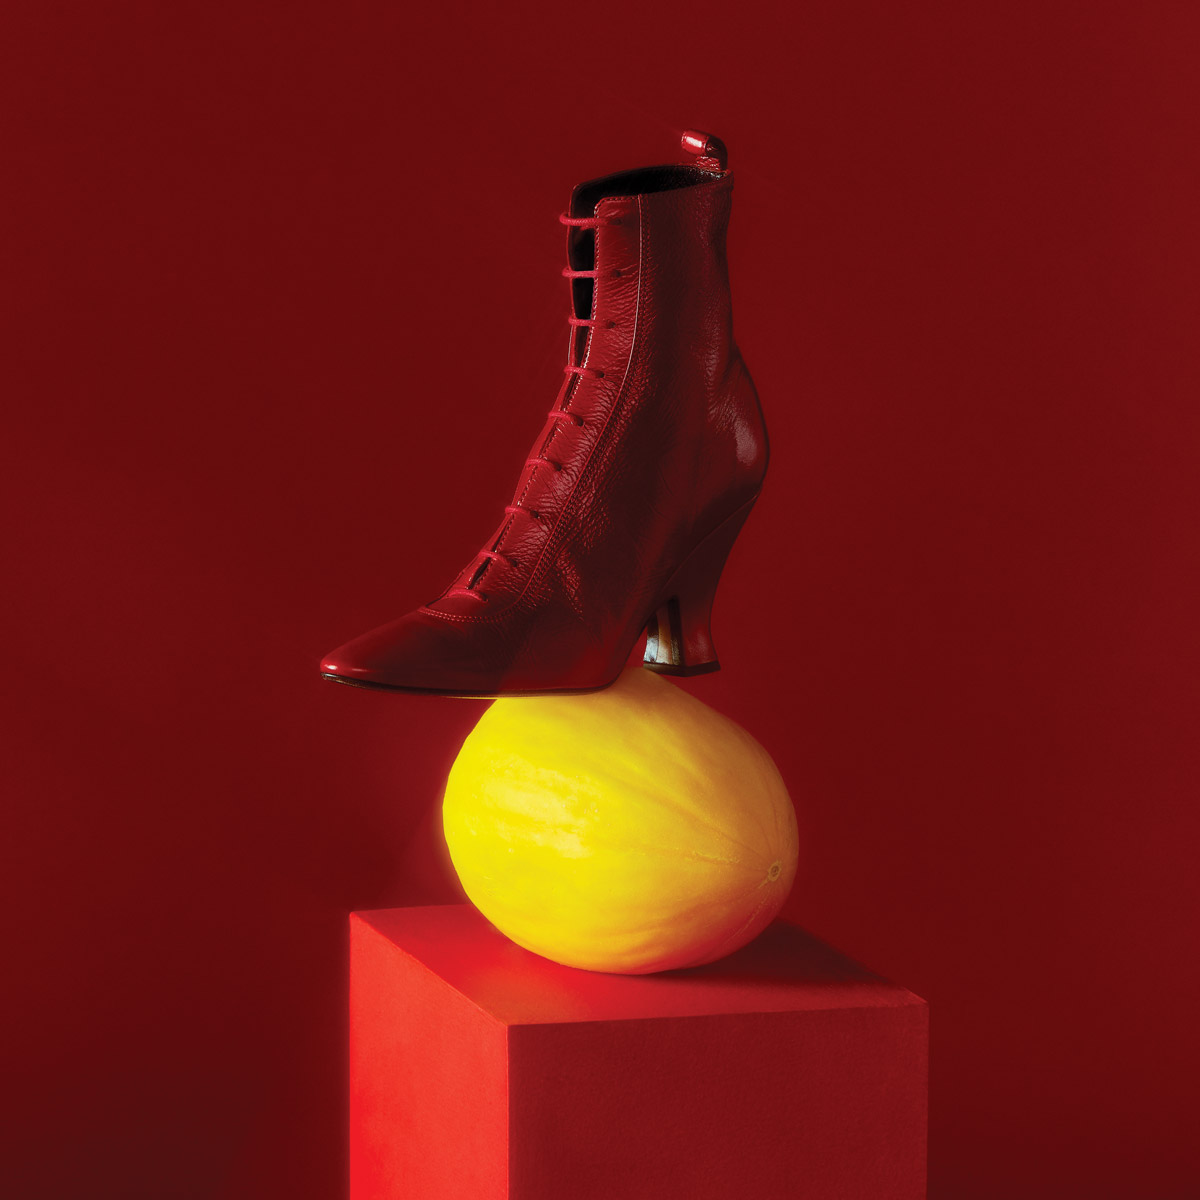 Marc Jacobs rouge boot